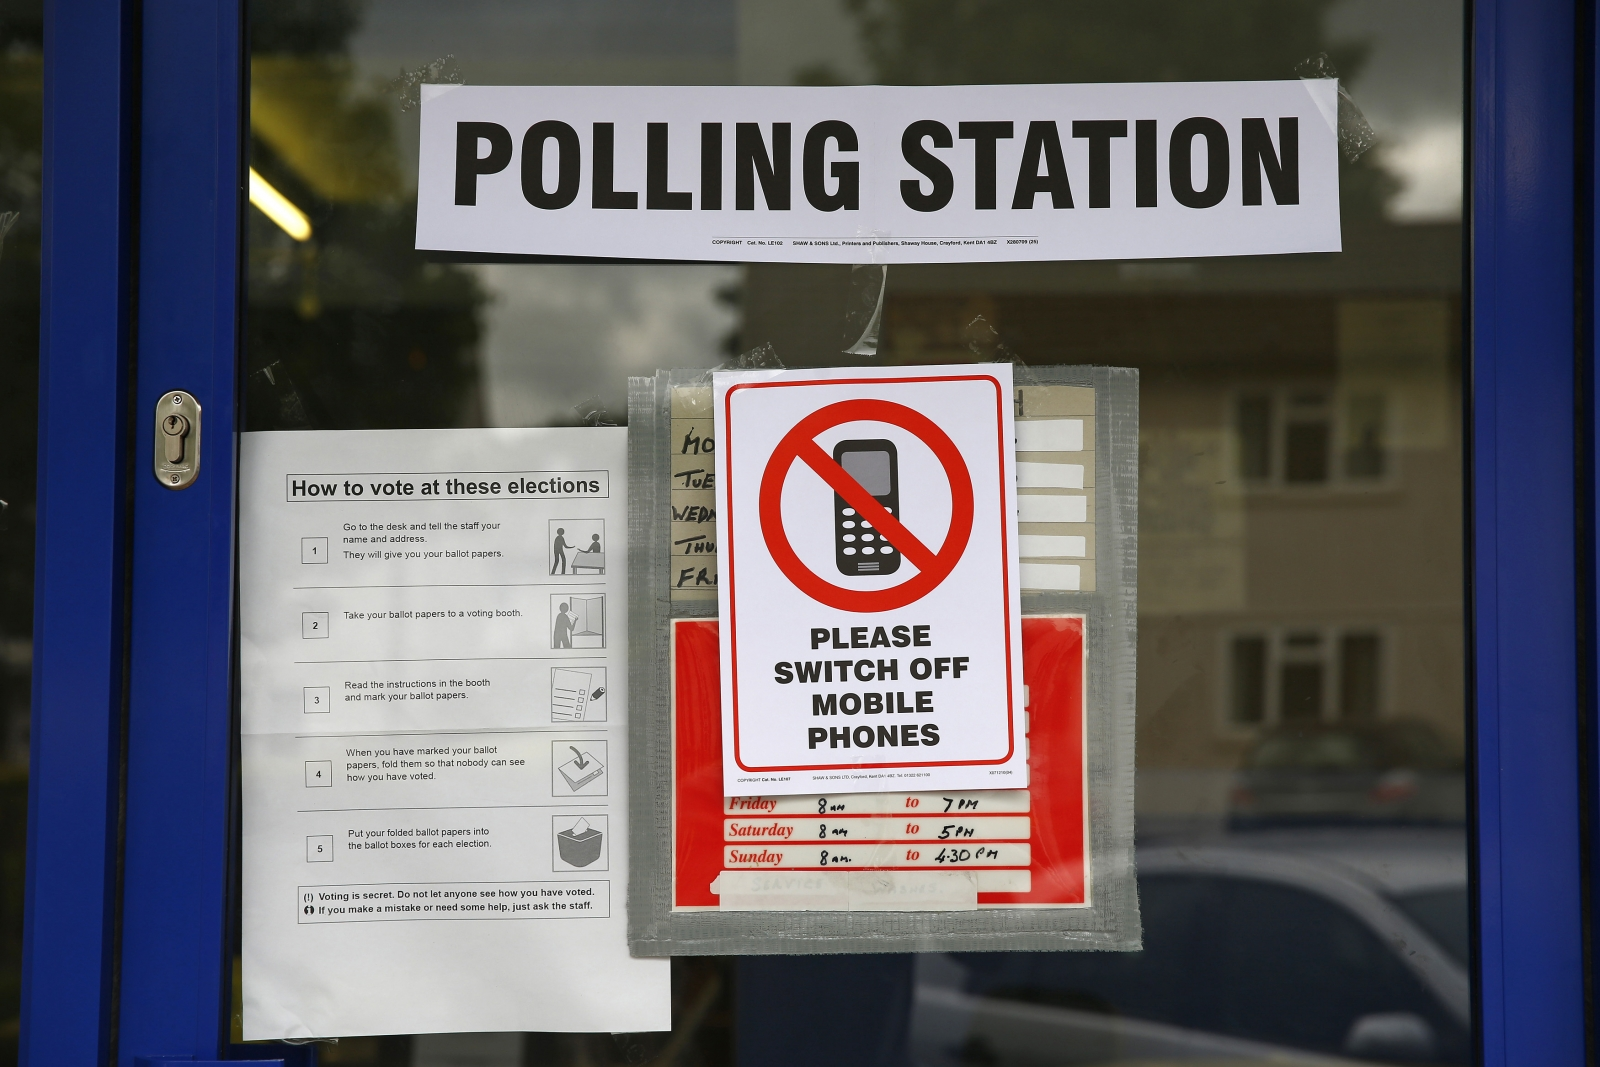 polling station sign Oxford general election UK